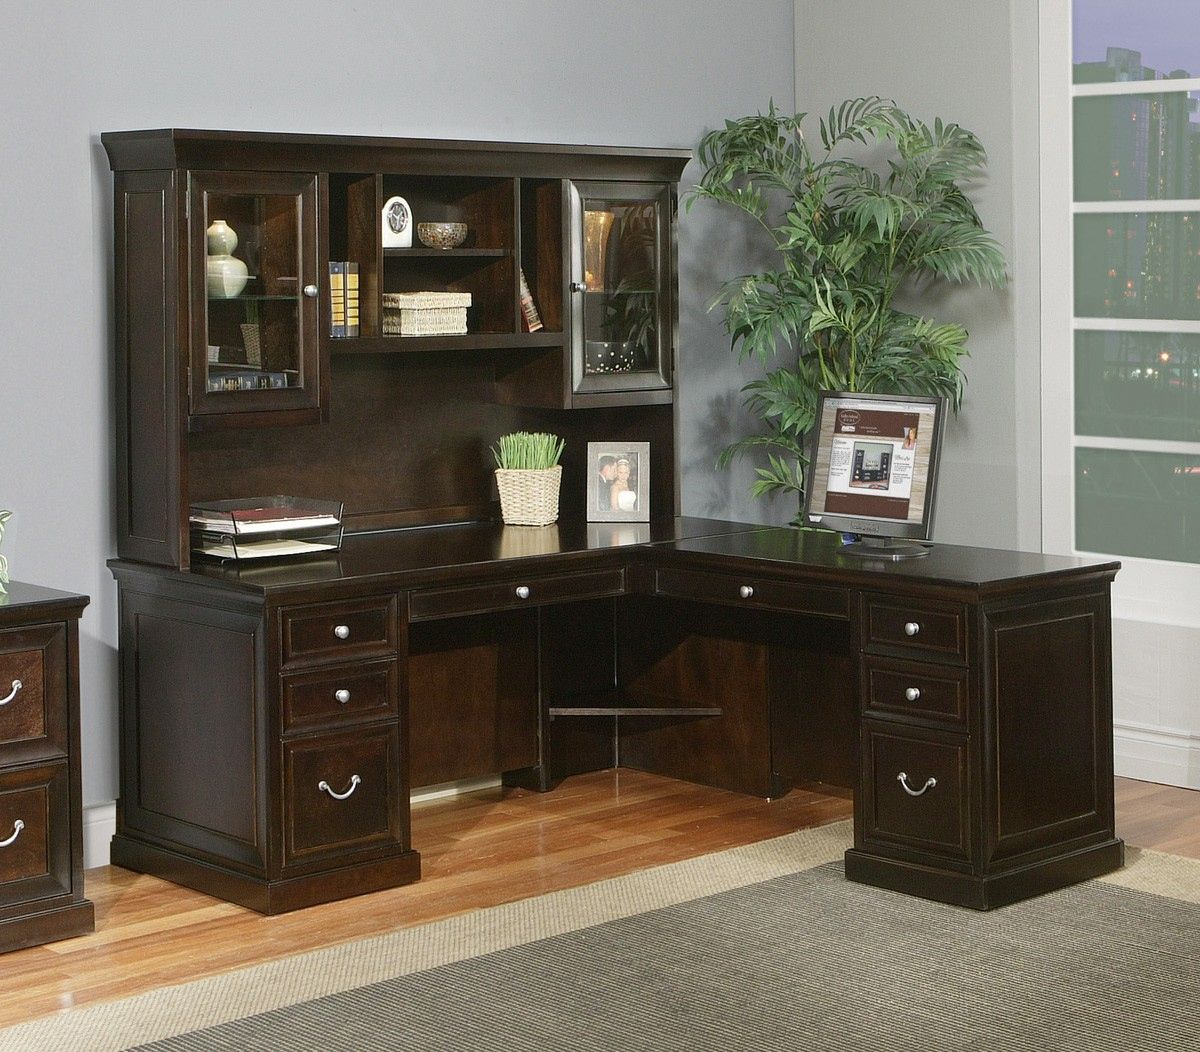 L shaped executive desk with hutch used home office furniture check more at http